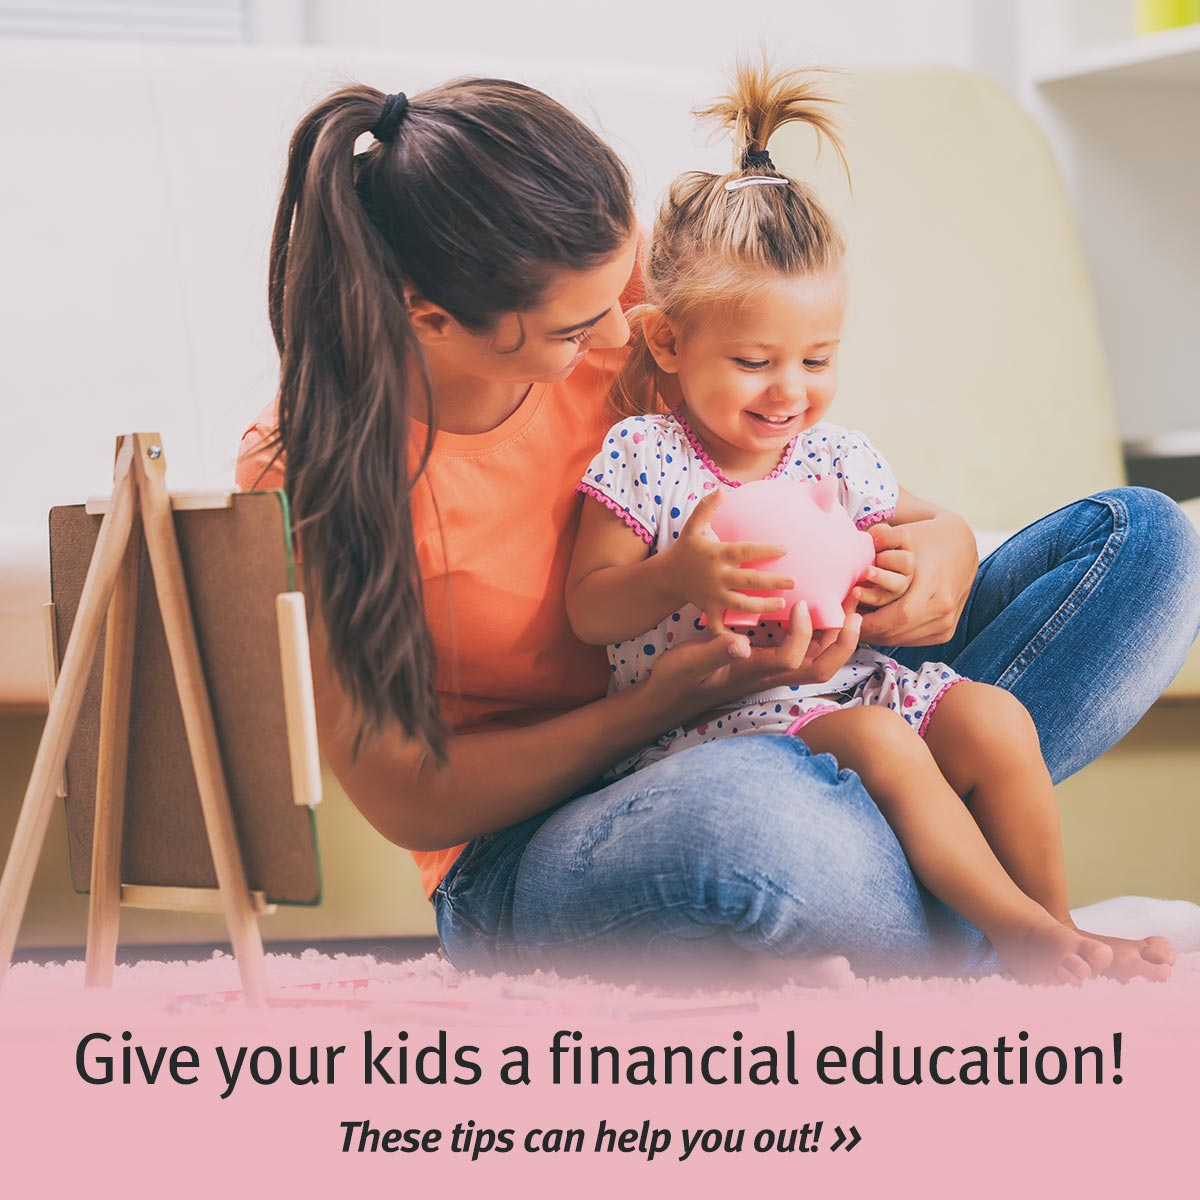 Give Your Kids A Financial Education